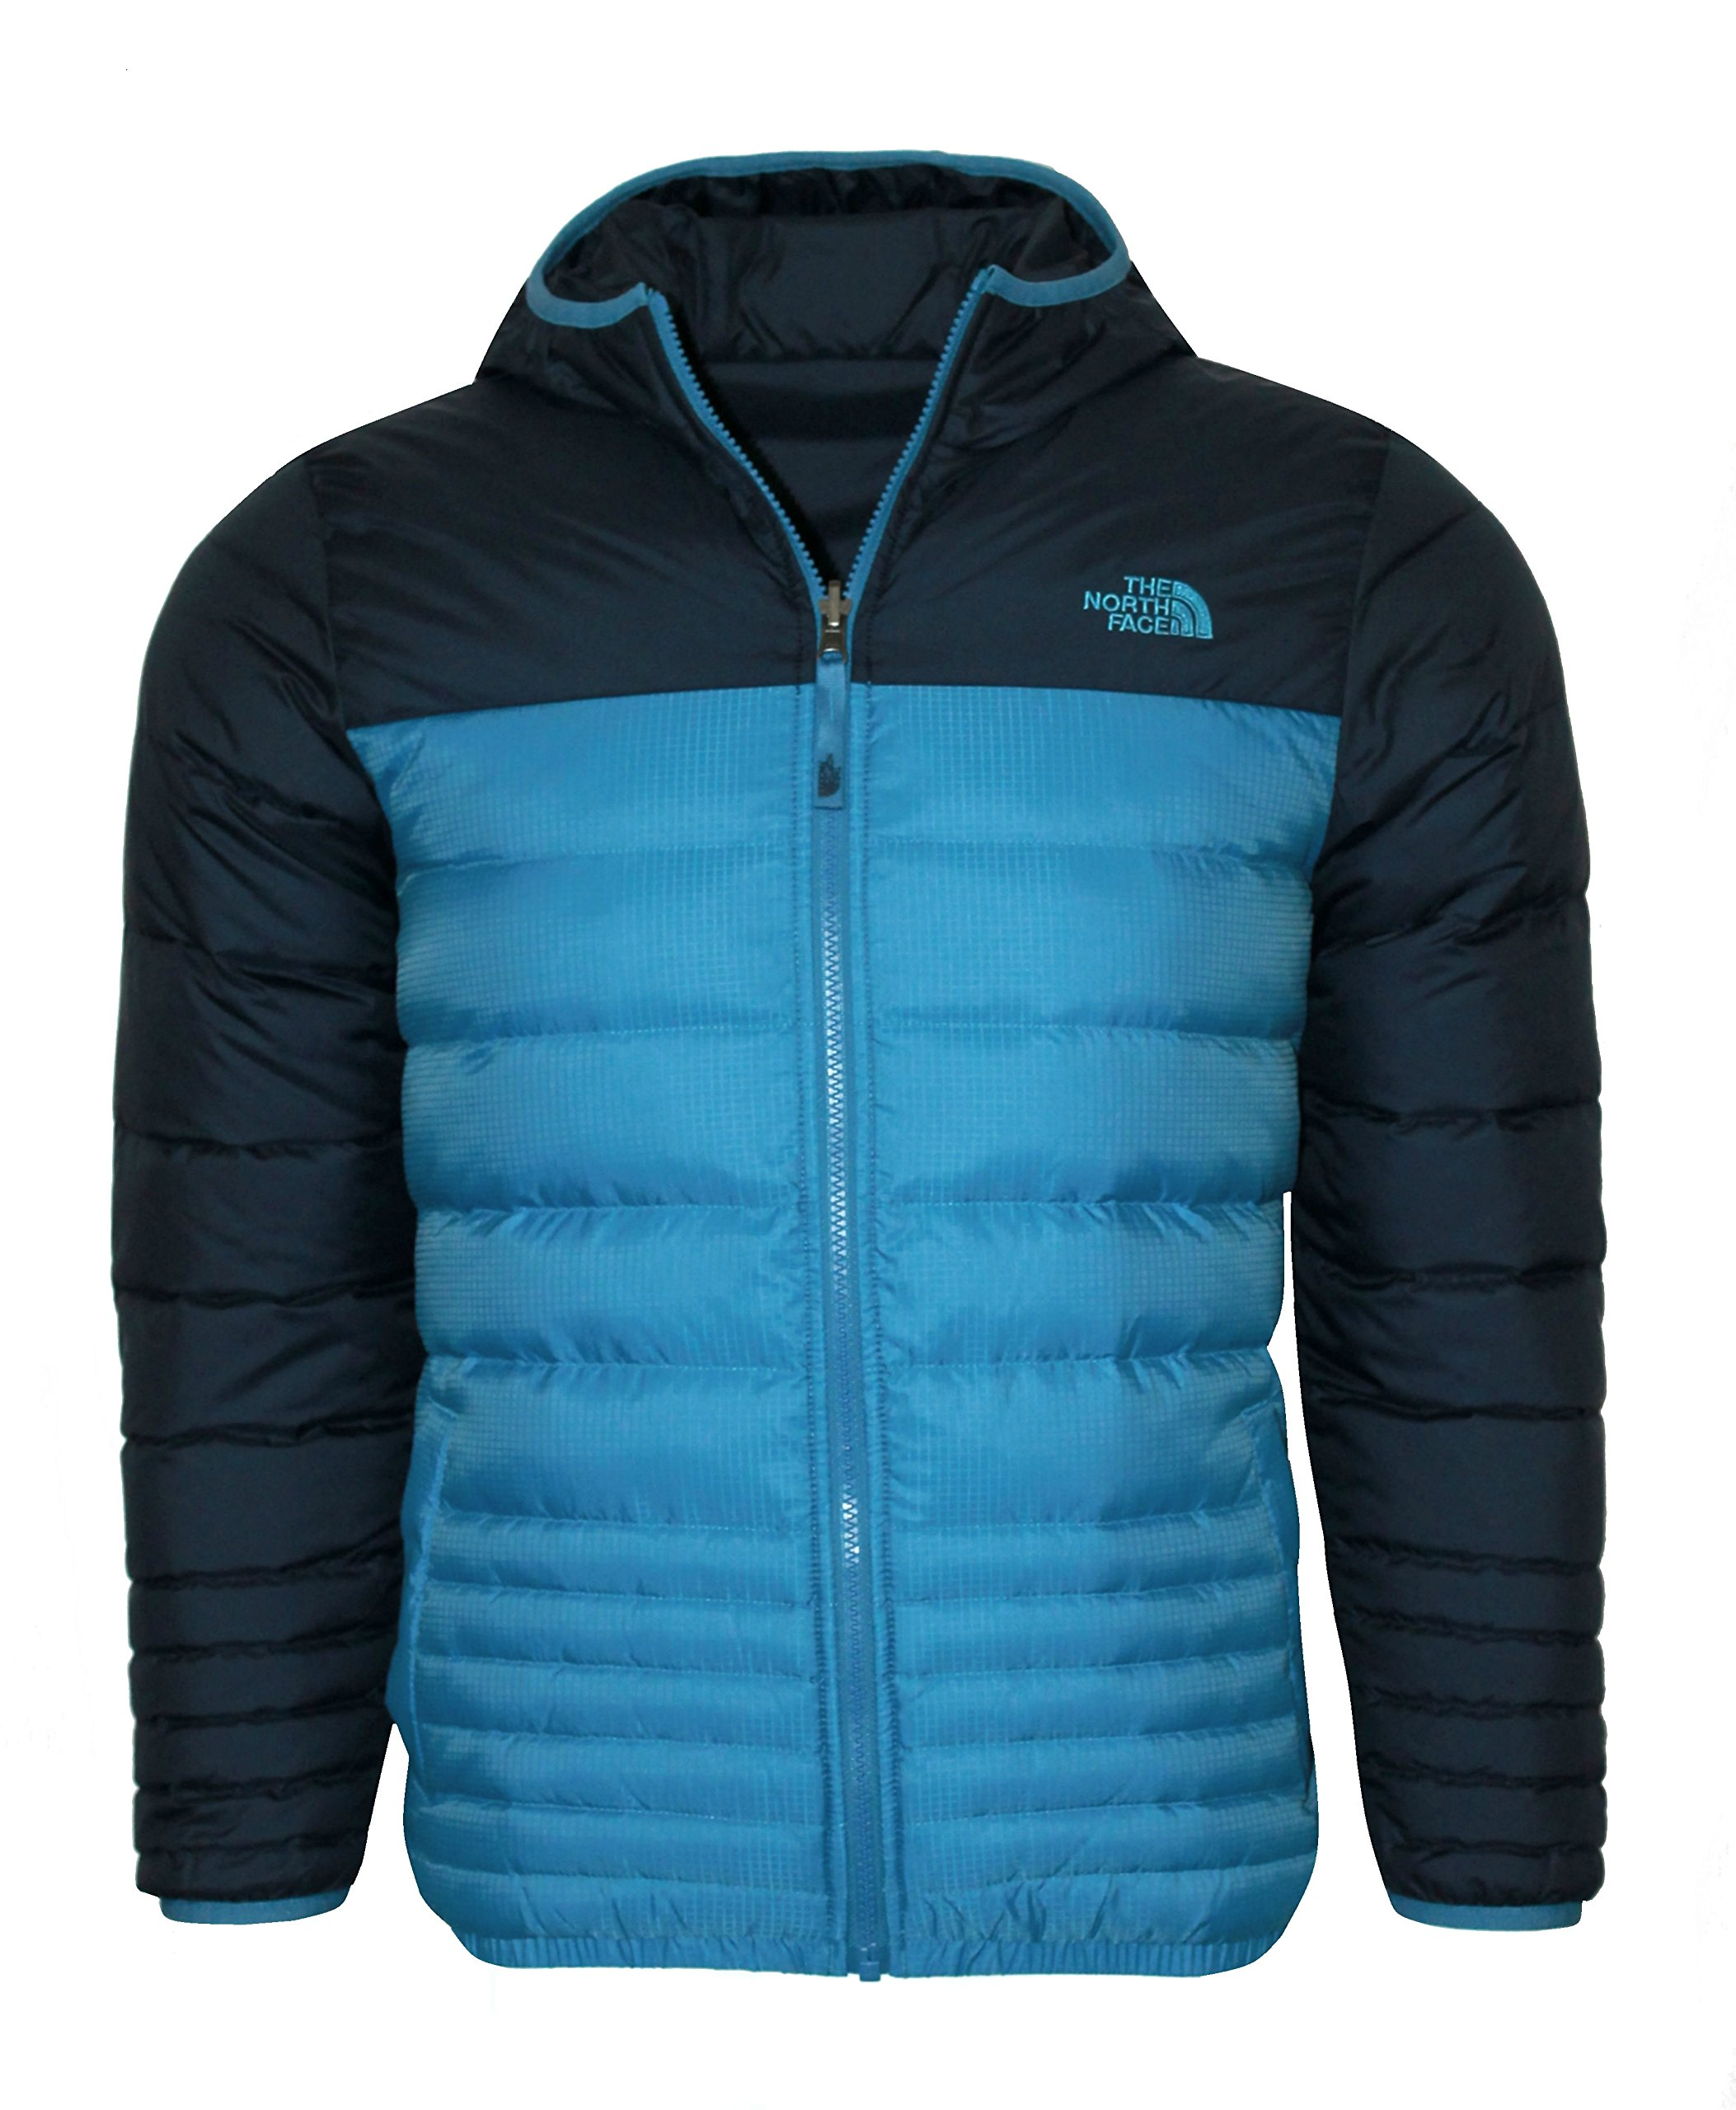 THE NORTH FACE youth boys REESE DOWN REVERSIBLE hooded JACKET Heron Blue (L 14/16)